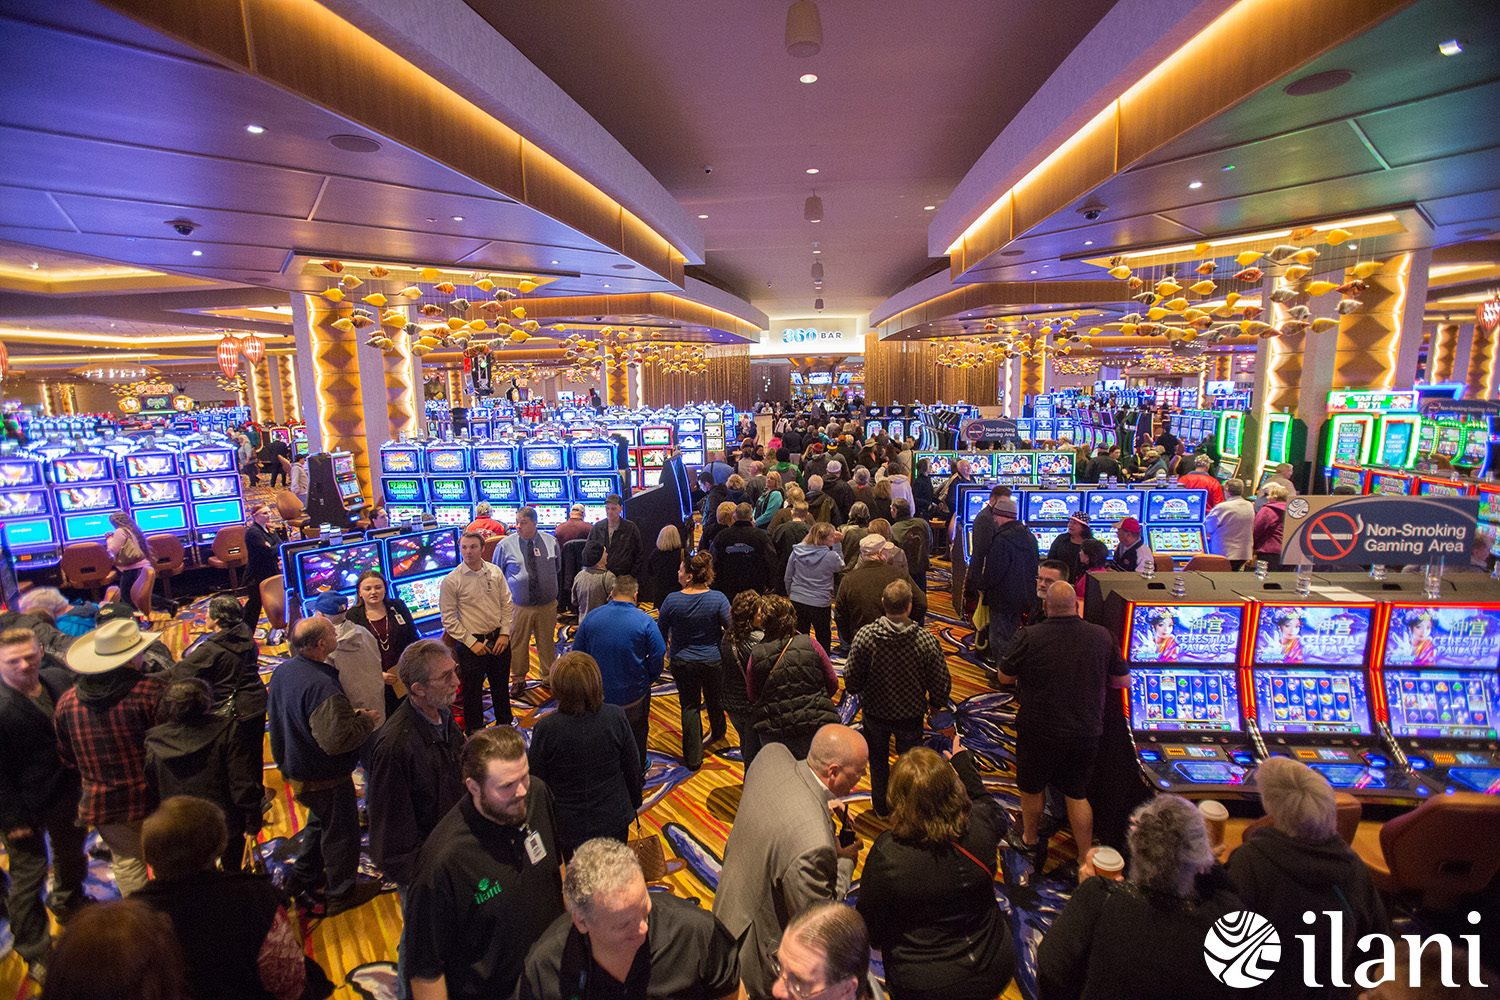 Cowlitz Tribe reports strong turnouts a month after casino debut